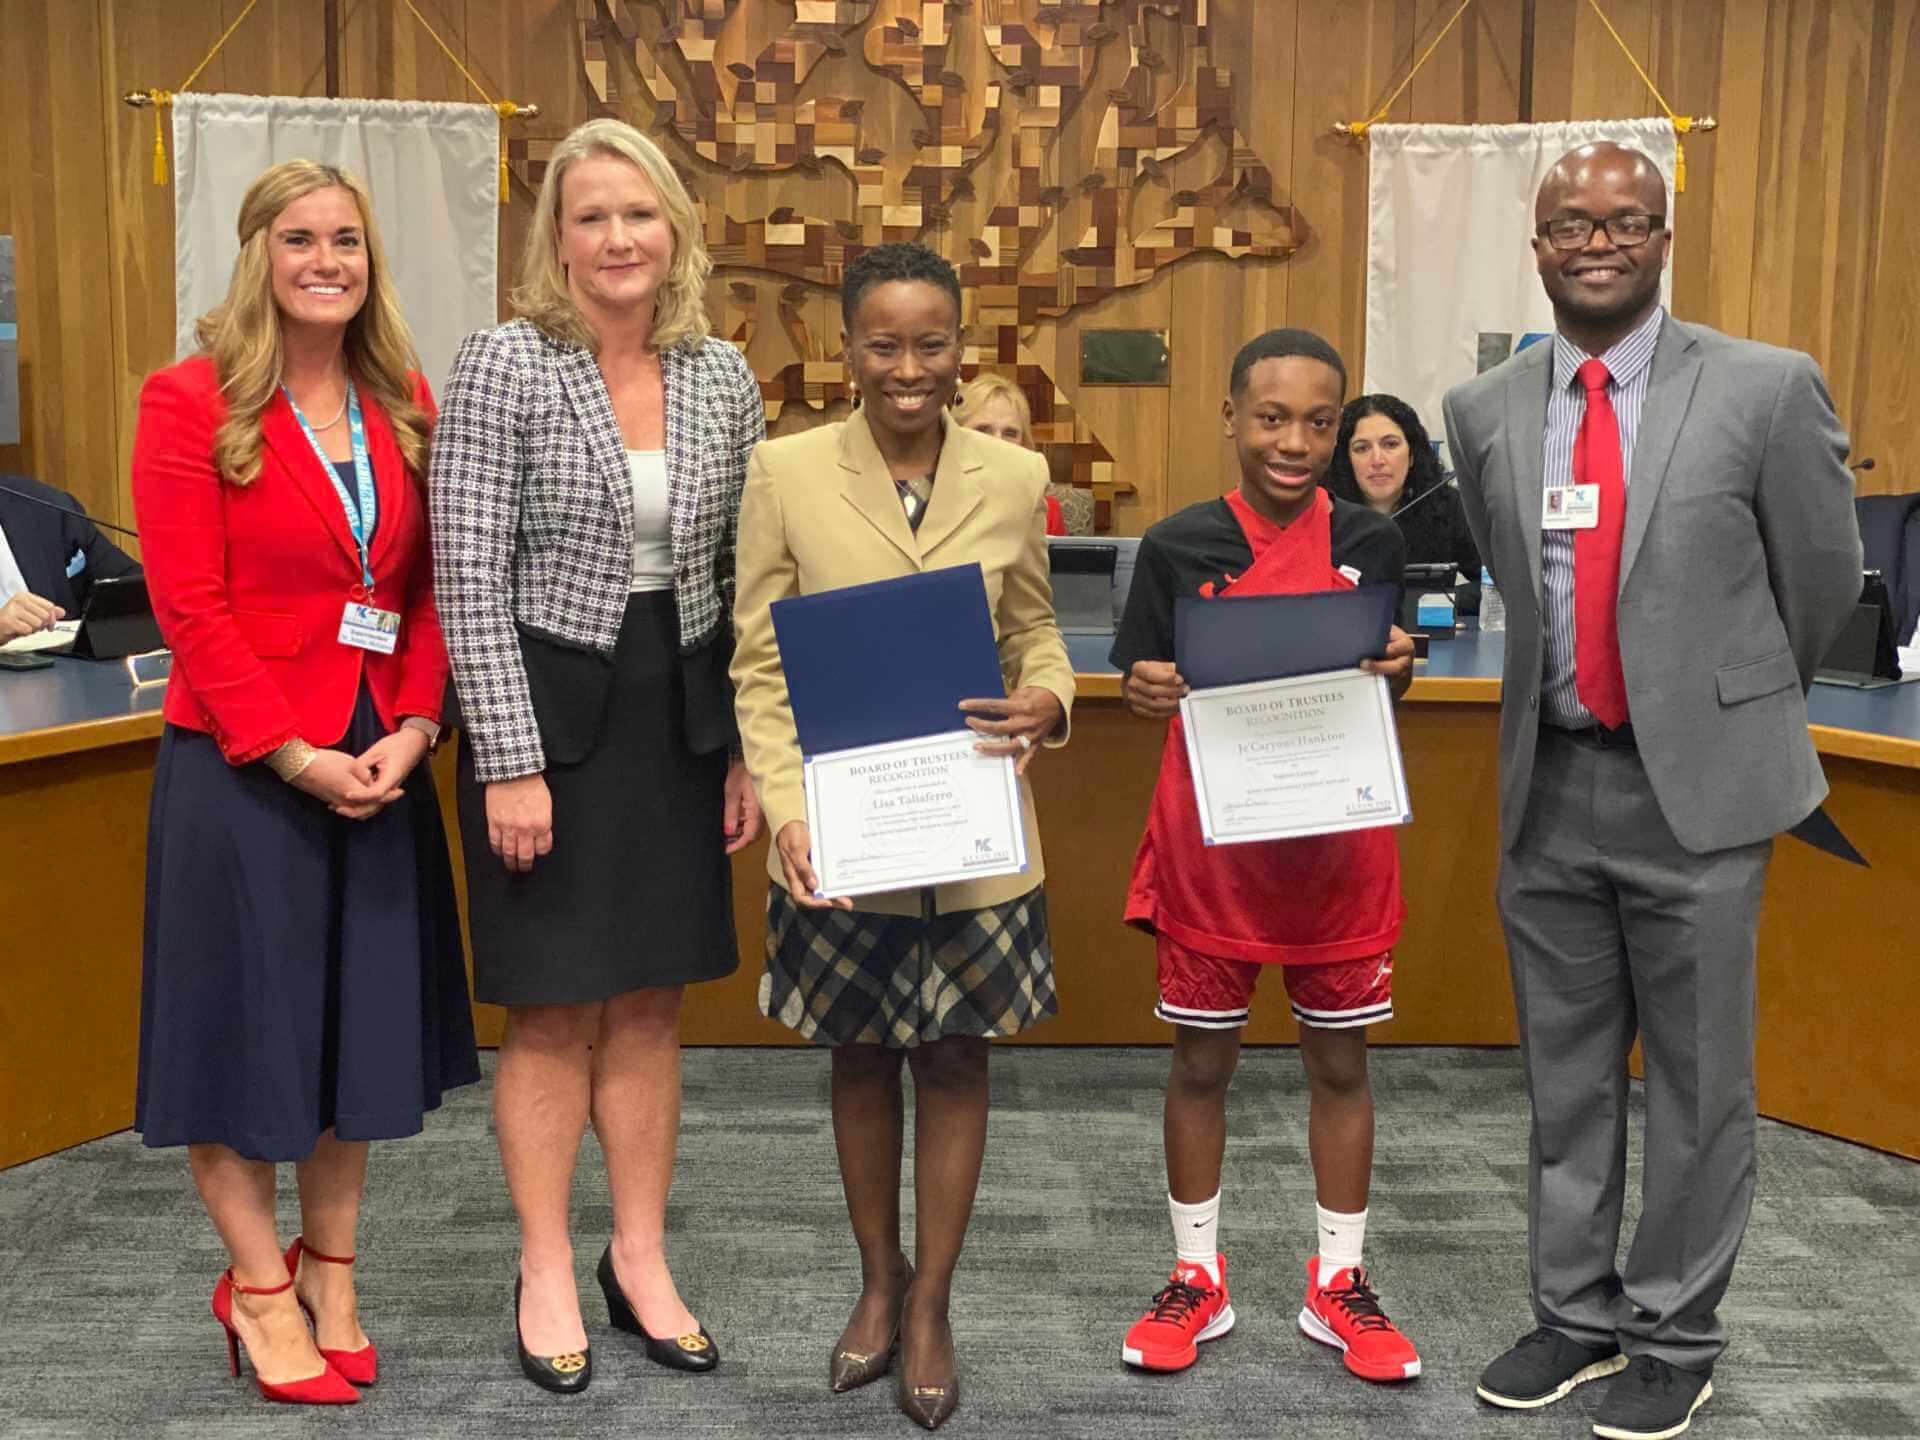 Outstanding Klein Intermediate Students and Educators Recognized at Board Meeting